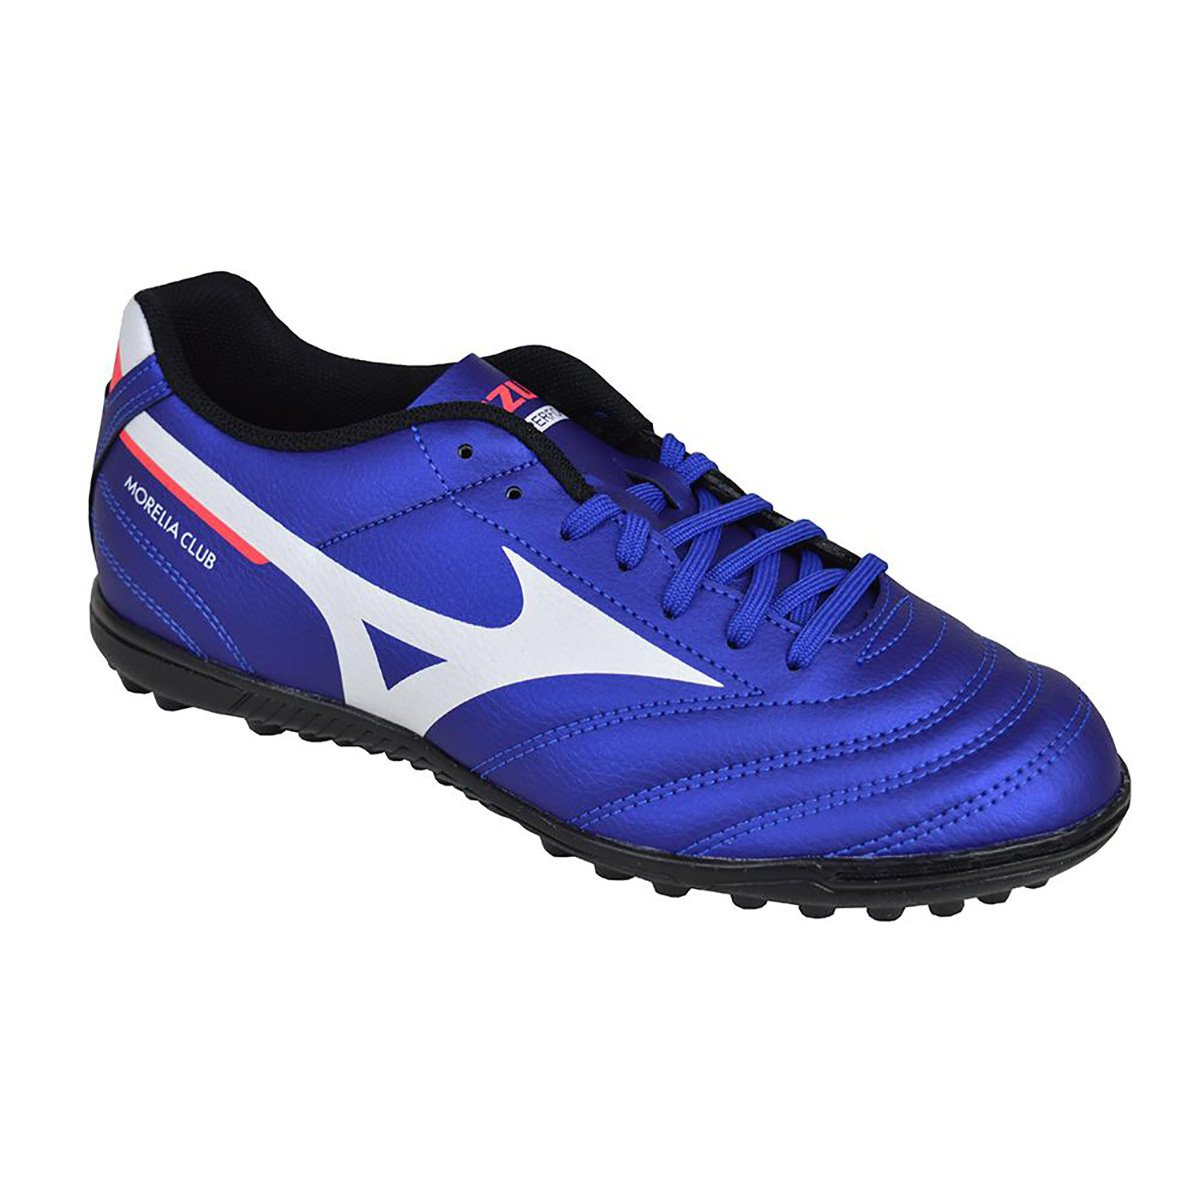 Chuteira Mizuno Society Morelia Club  AS - Azul e Branco